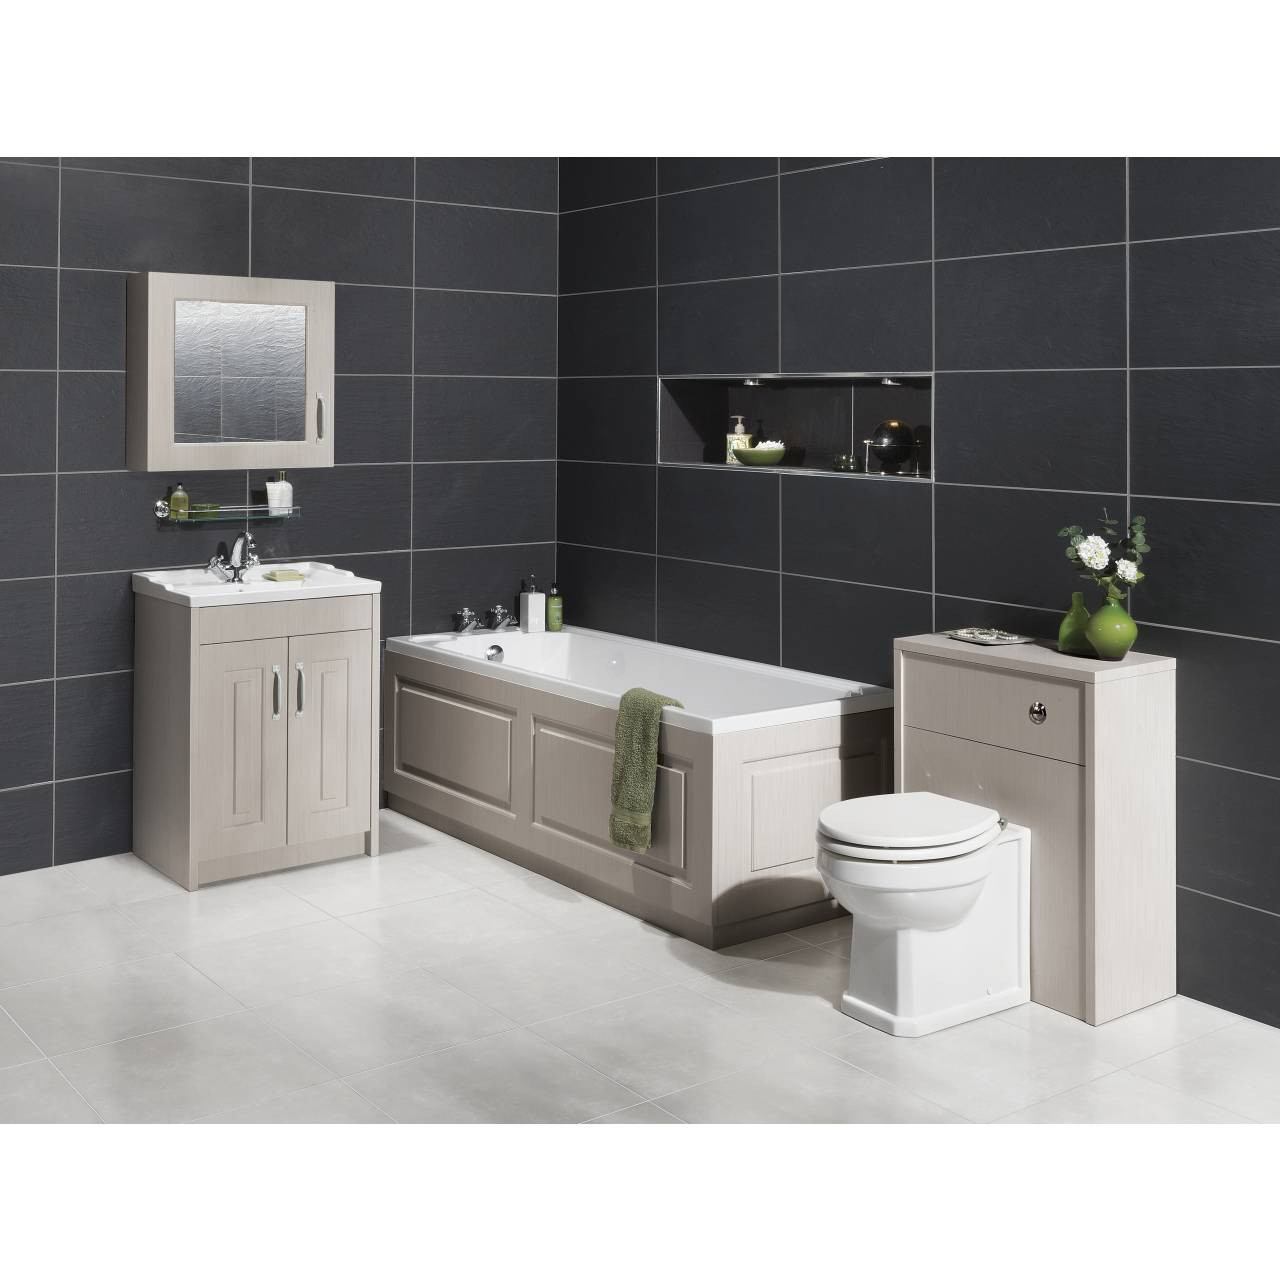 Premier York Stone Grey 500mm Toilet Unit - OLF241